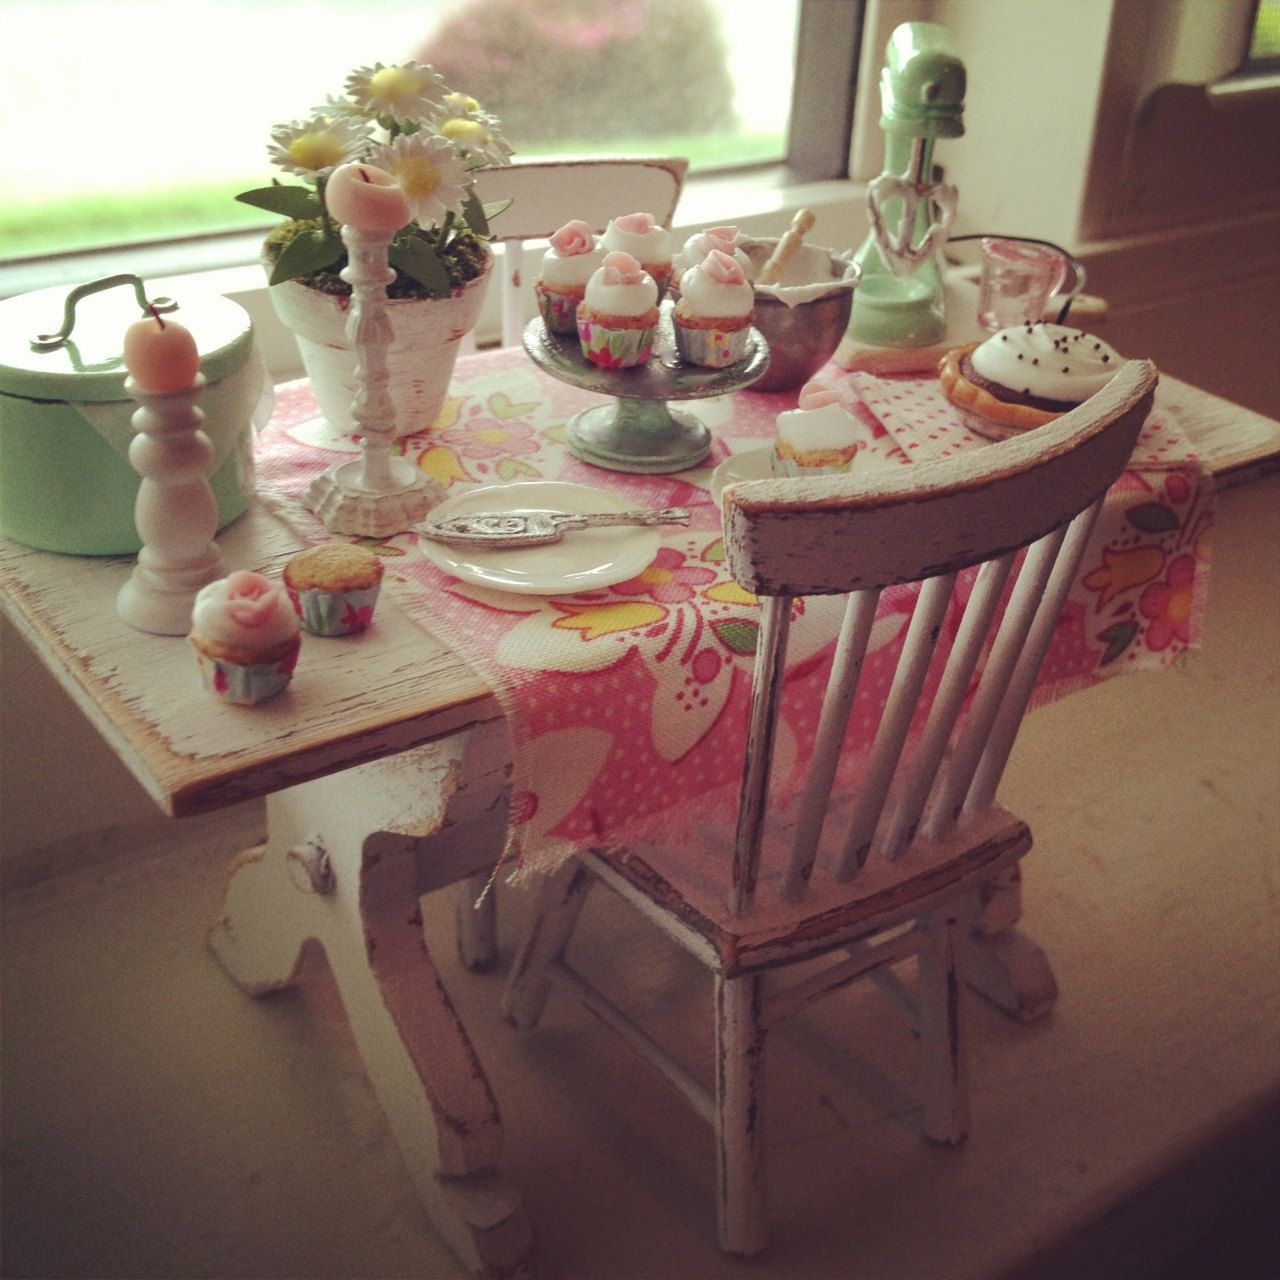 Miniature shabby chic filled baking table and chairs 159